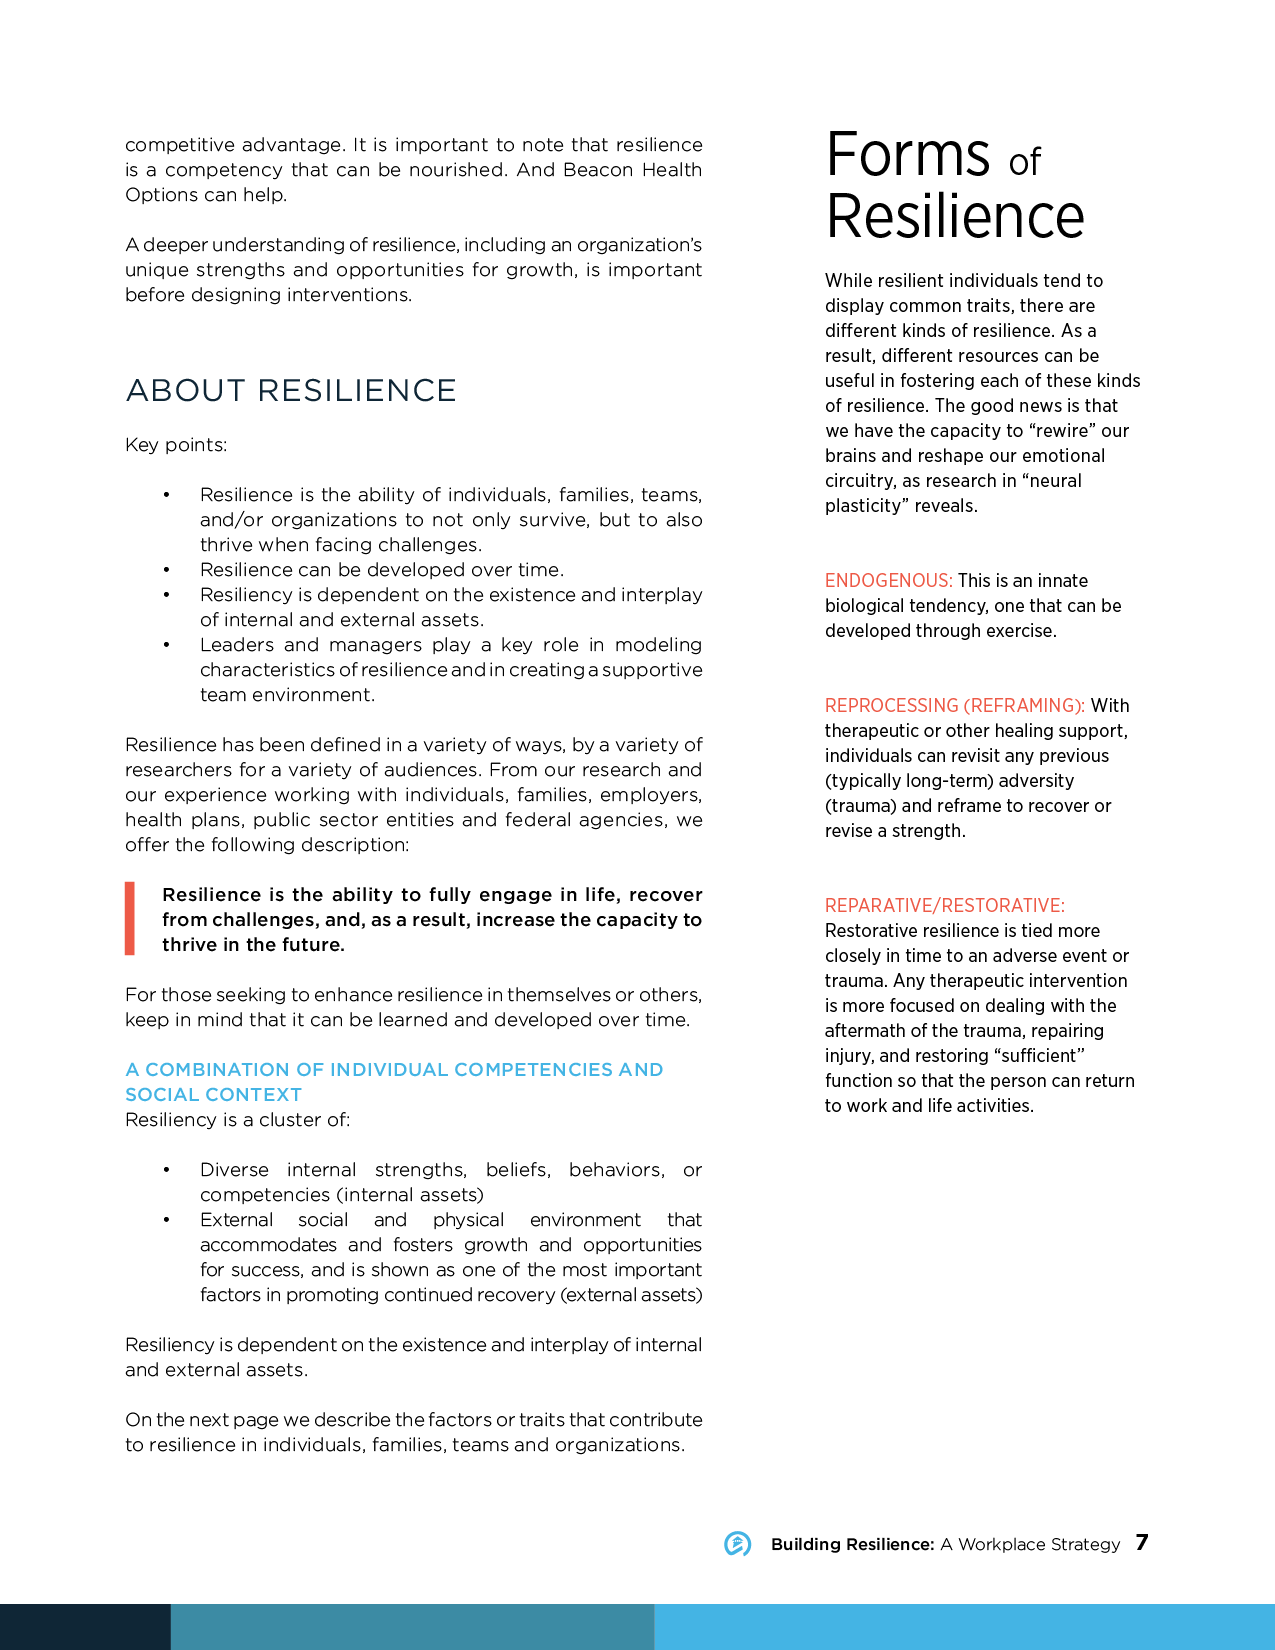 Beacon-10-014-Build-Resilience_v77.png